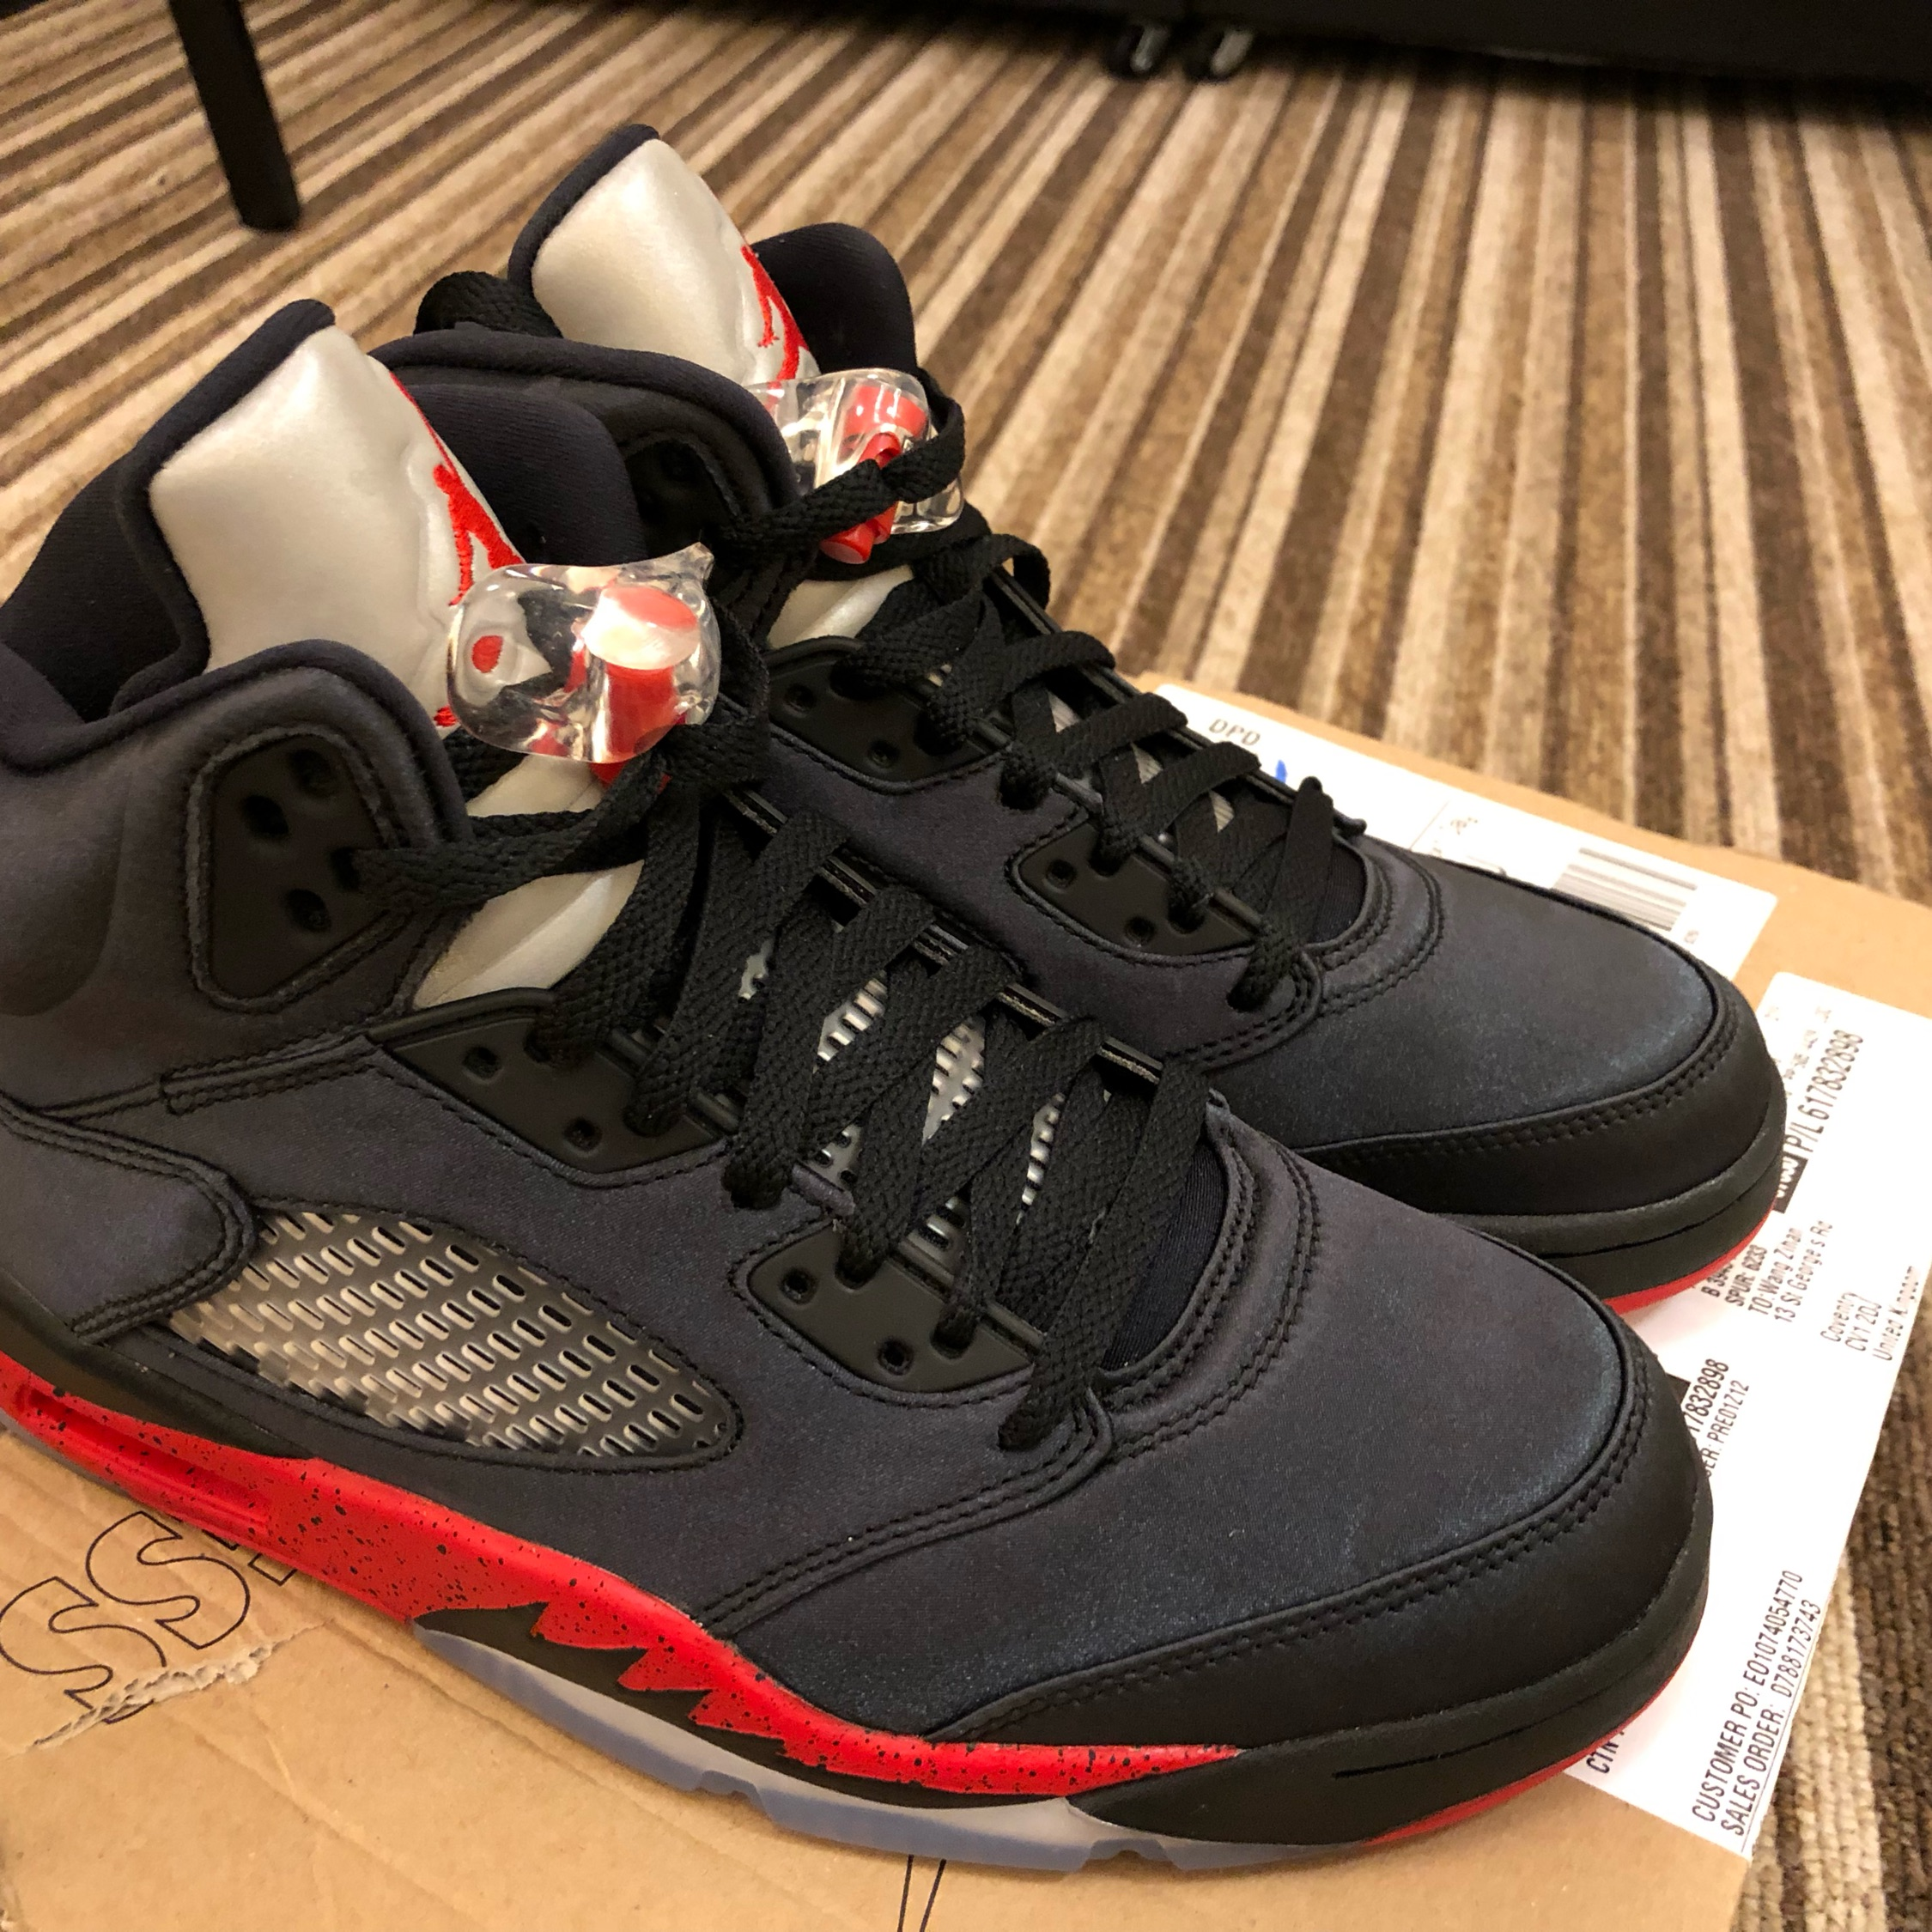 promo code a4b71 24471 Air Jordan V Black/University Red (Can Trade)